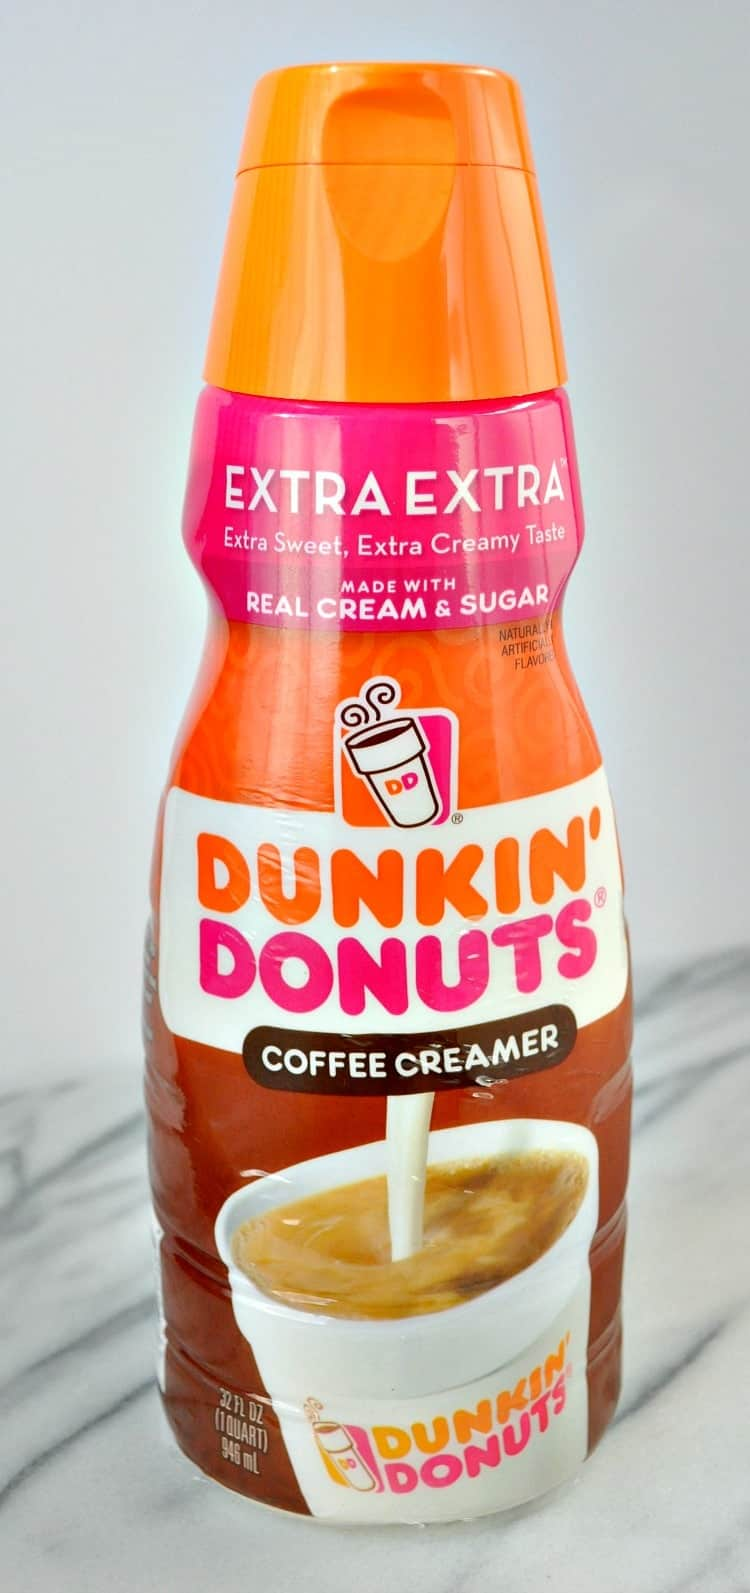 A close up shot of dunkin donuts coffee creamer